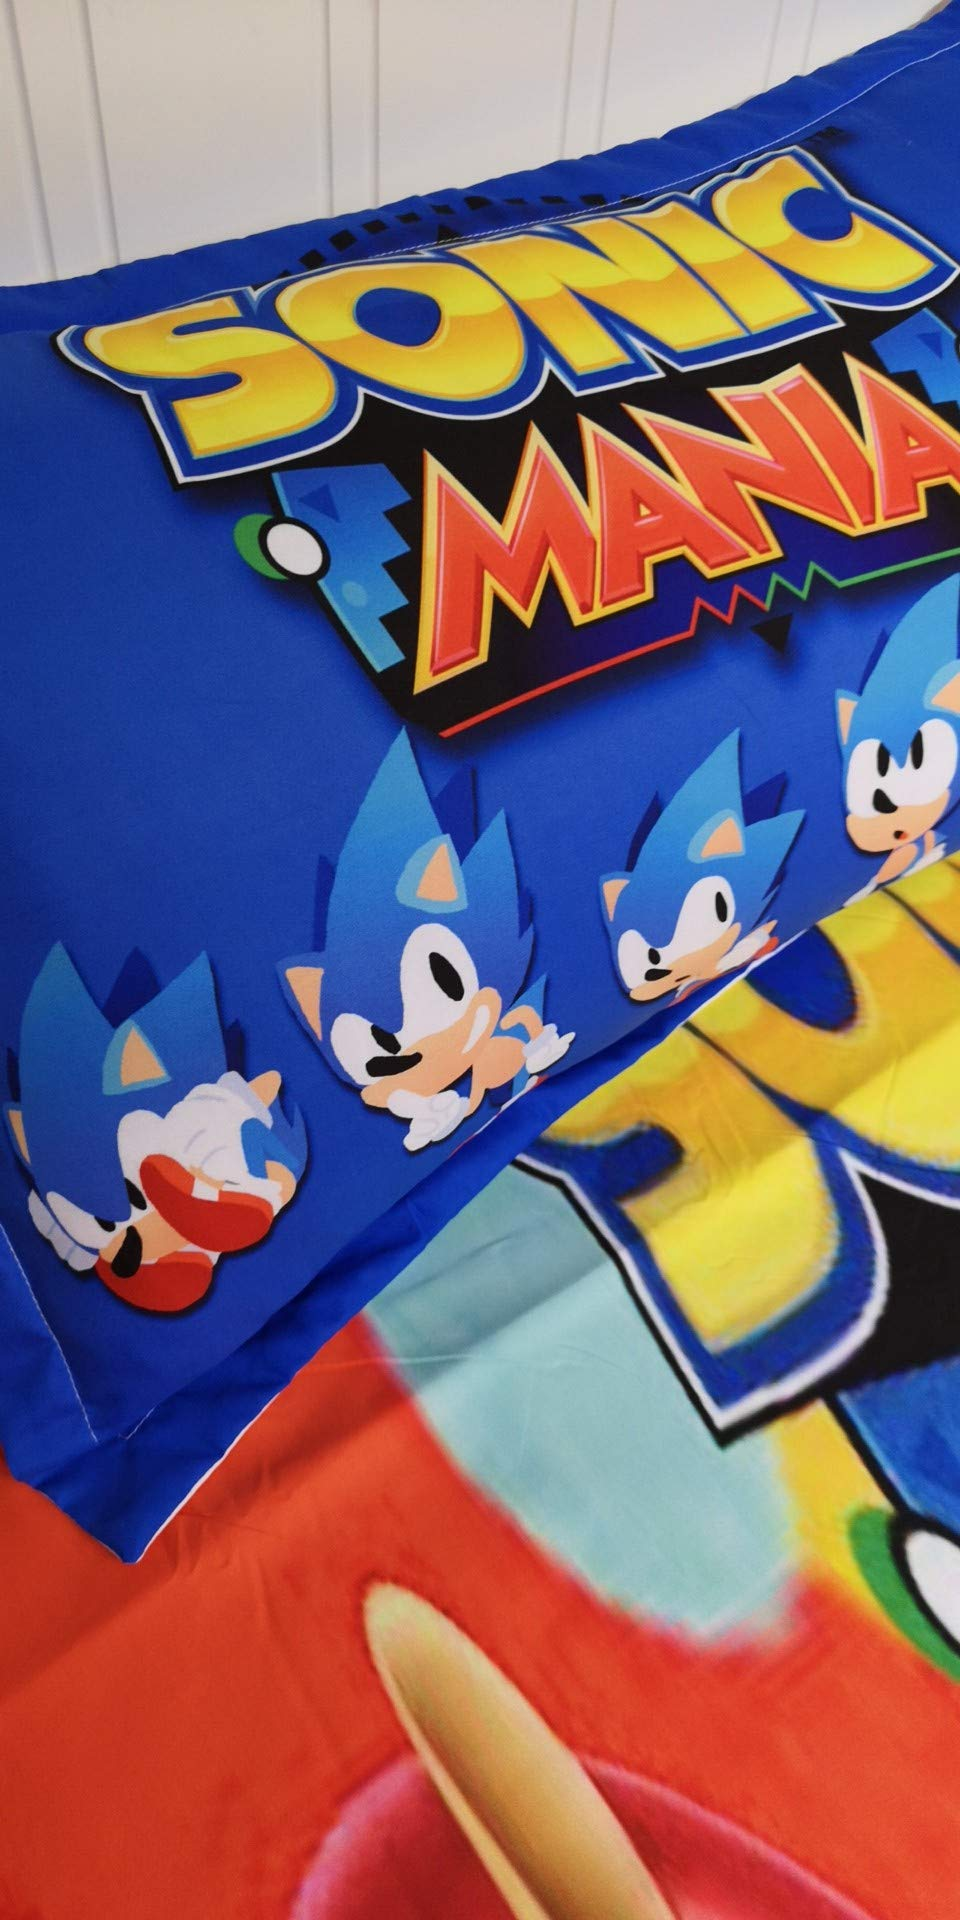 Kid Duvet Cover Queen Sonic Bedding 3 Piece Duvet Covers for Children/Adult by lovemmm